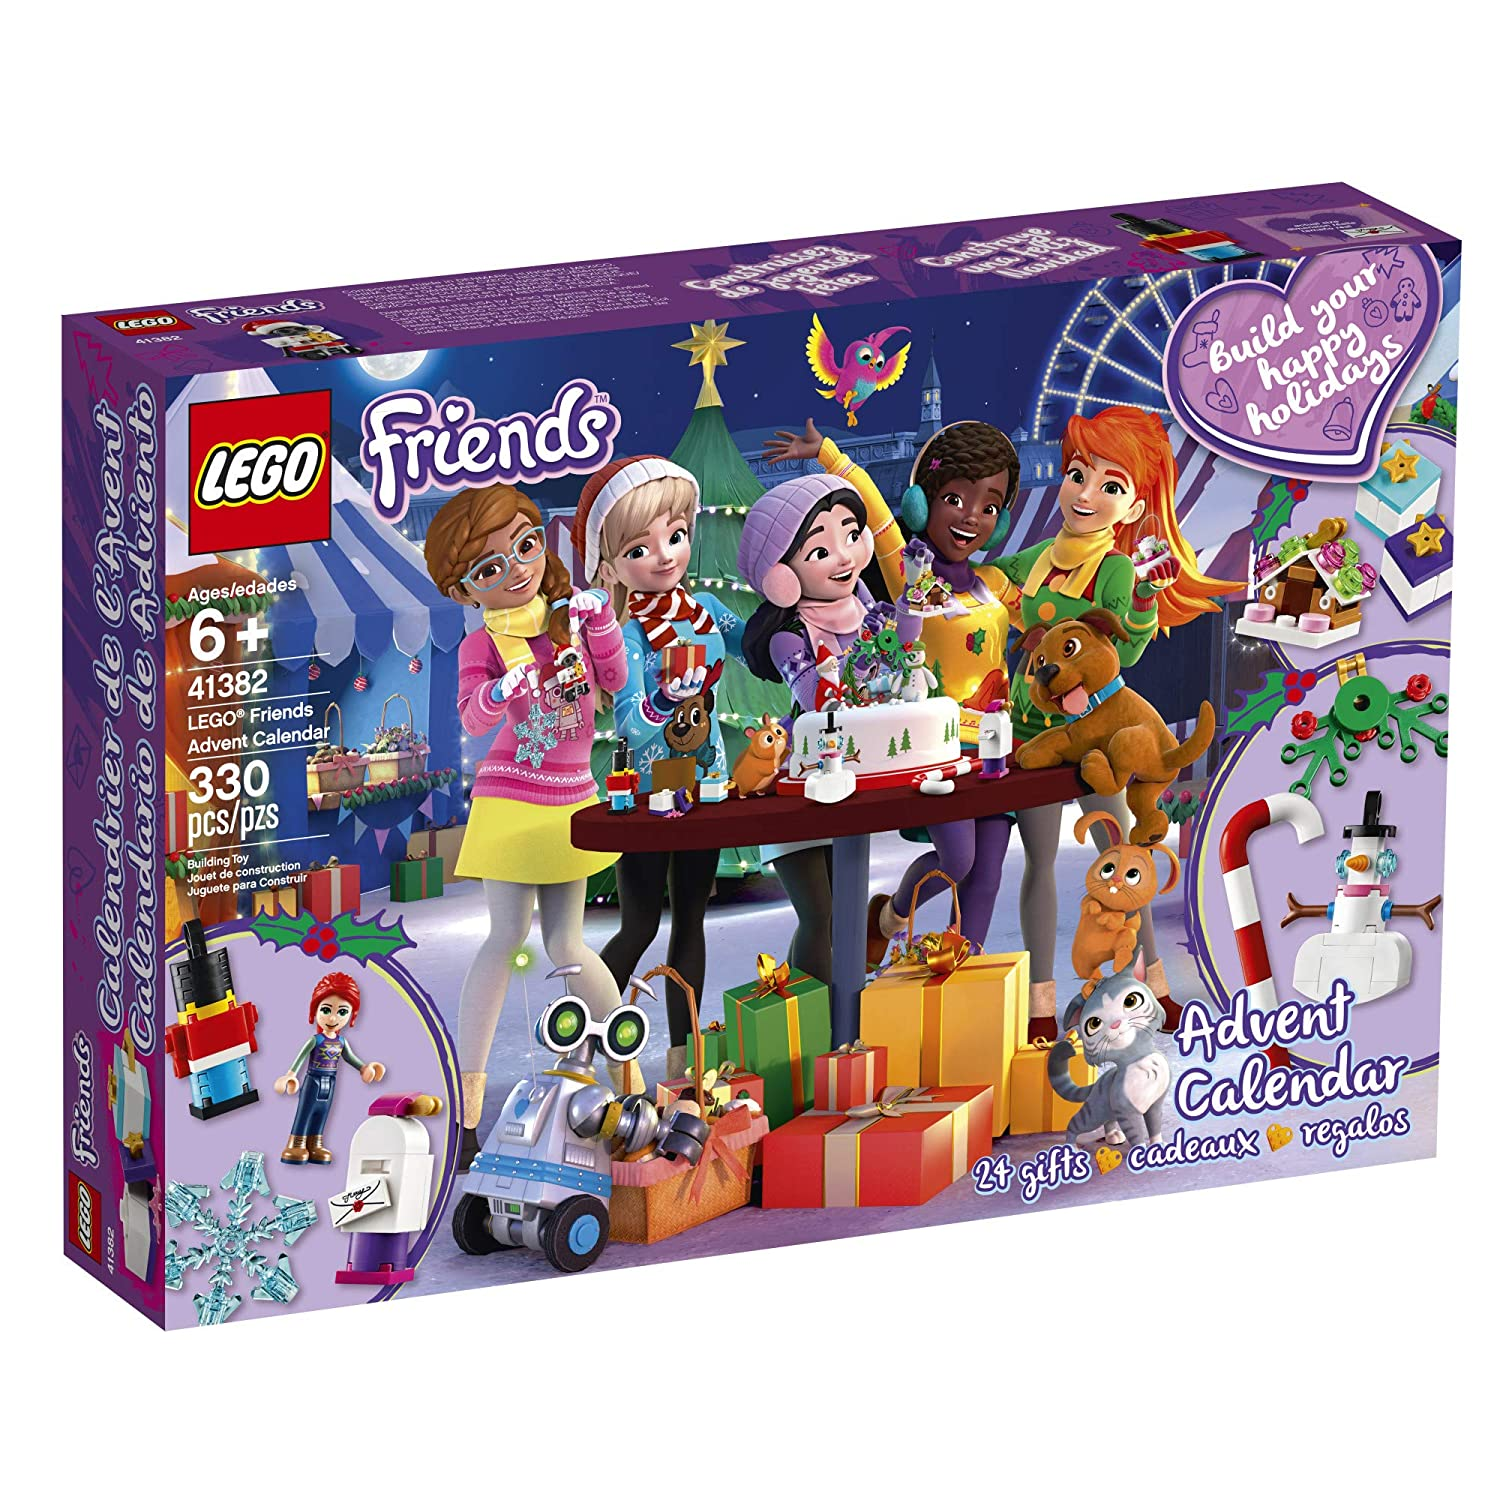 Calendars Order On Lego Amazon Pre Advent 2019 The Fan Brick SqzUMVp